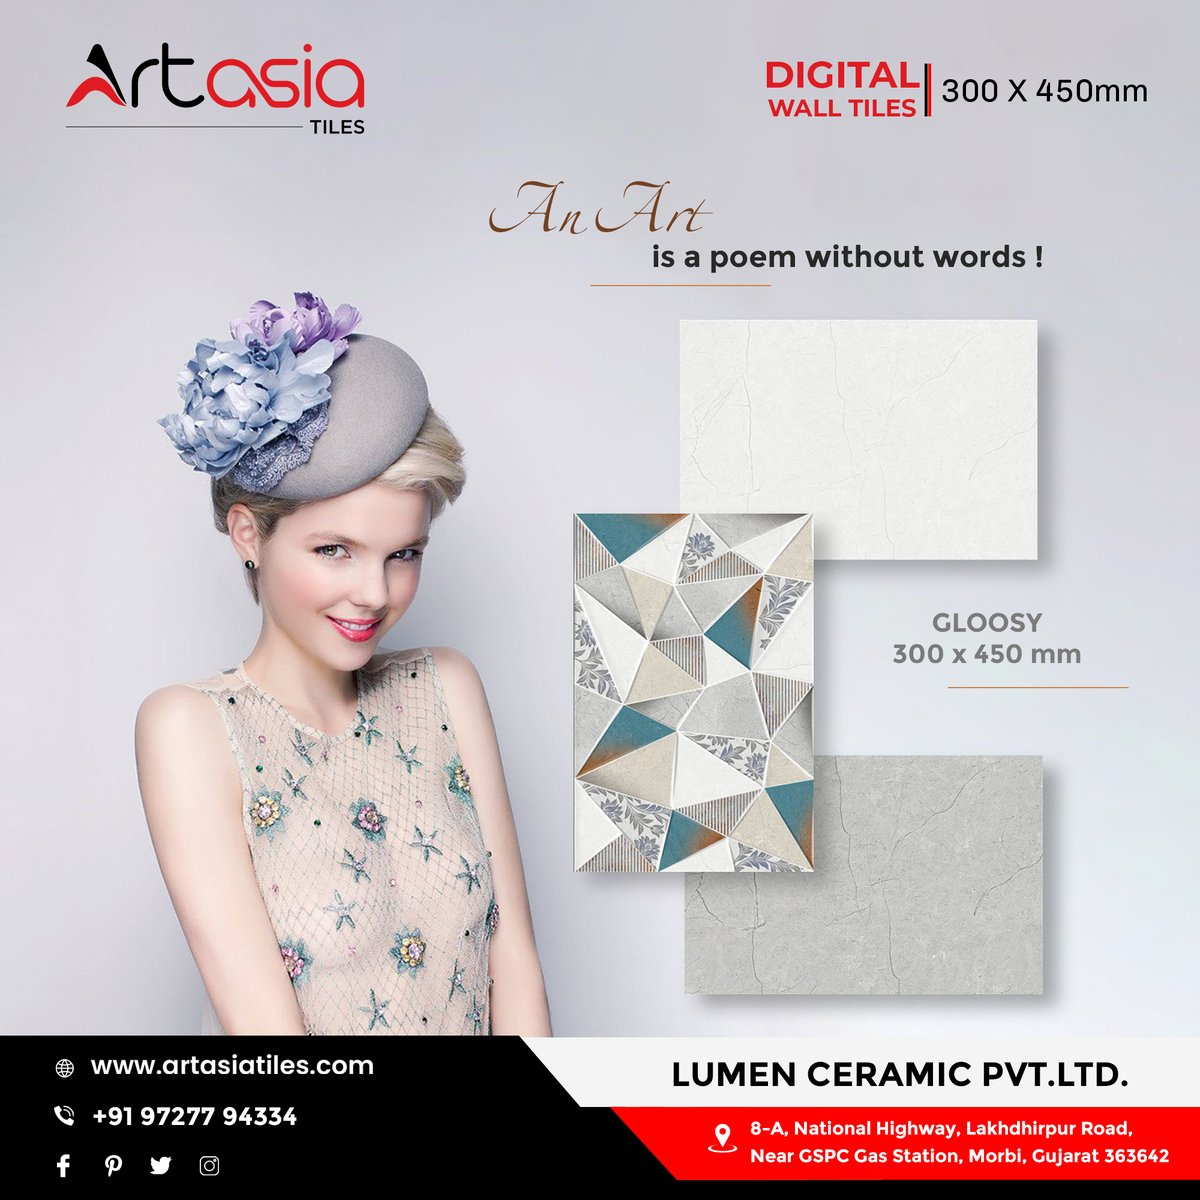 """""""An Art is a poem without words !"""" 300x450mm   Glossy   Digital Wall Tiles #artasiatiles #300x450mm #livedesign #Artasia #digitalwalltiles #tiles #ceramictiles #ceramic #interiourdesign #interiourhome #morbitiles #exports #tileexport #bestqualityproducts  #morbi #gujarat #indiapic.twitter.com/sv6f09ieb2"""